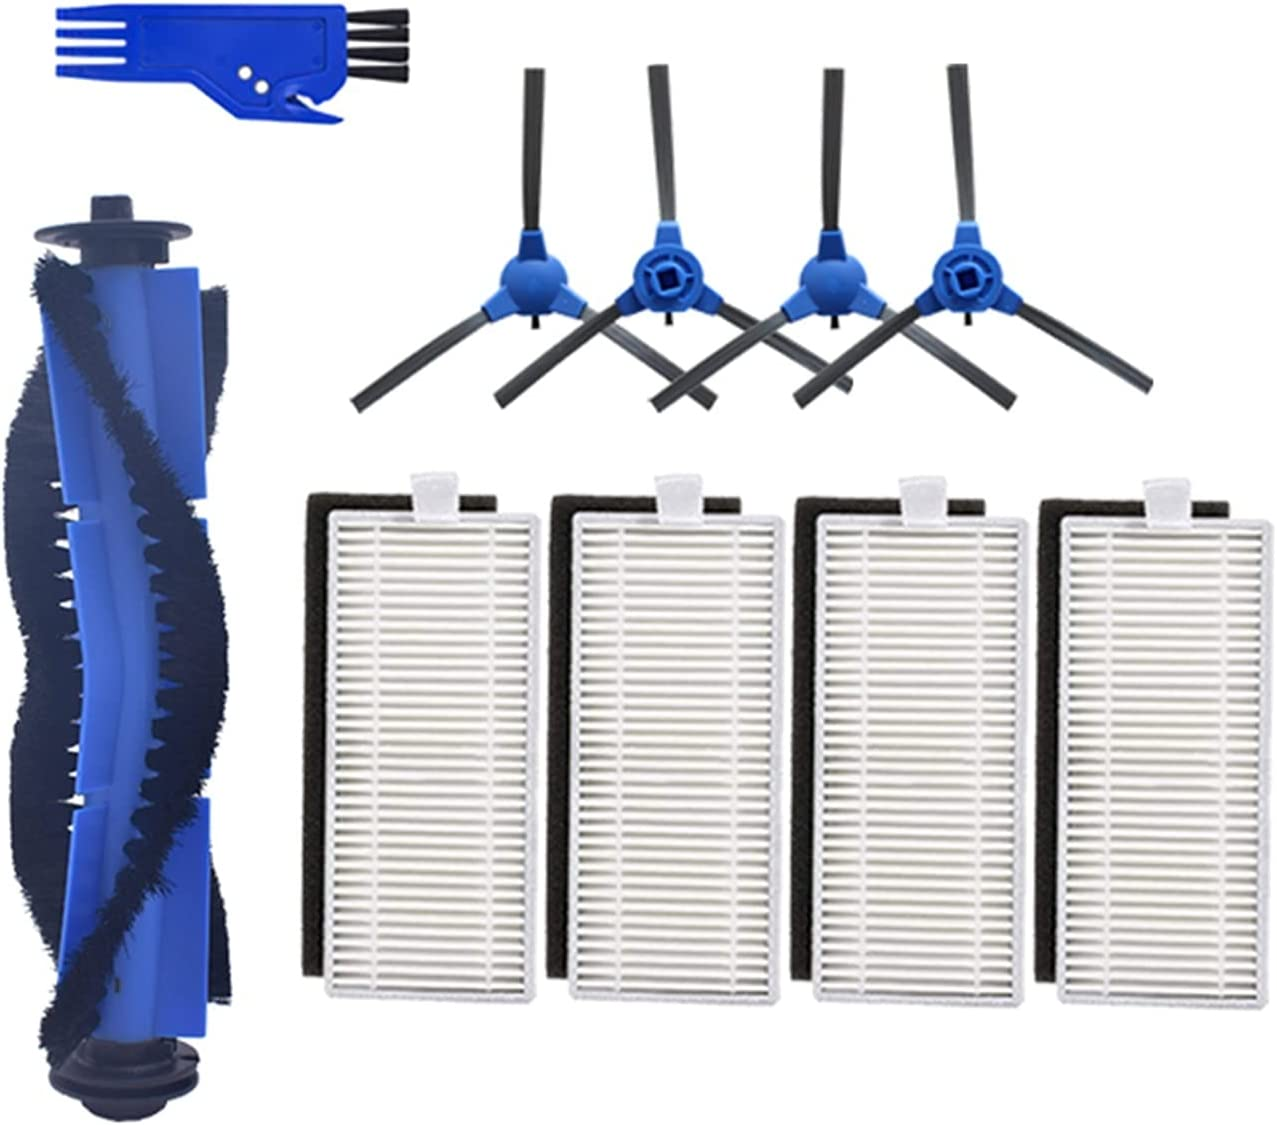 U-kitz Los Angeles Mall Replacement Kits Suitable for New arrival Cecotec Conga 1090 Robotic